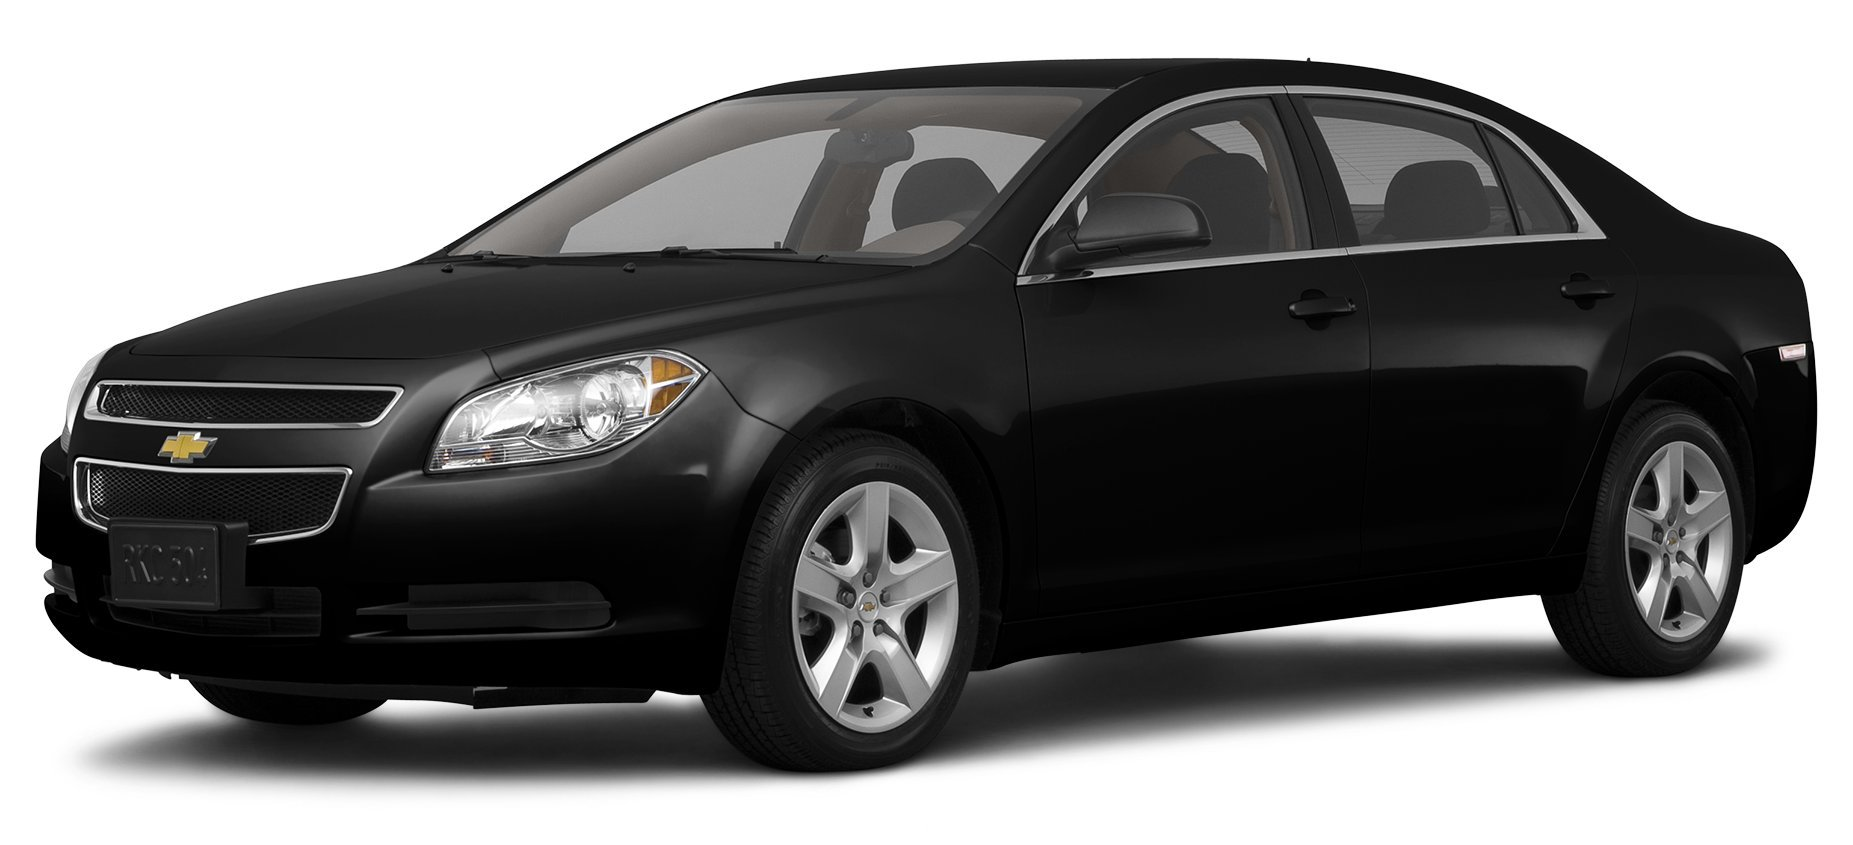 71uqqid76RL amazon com 2011 chevrolet malibu reviews, images, and specs vehicles Wiring Harness Diagram at gsmx.co